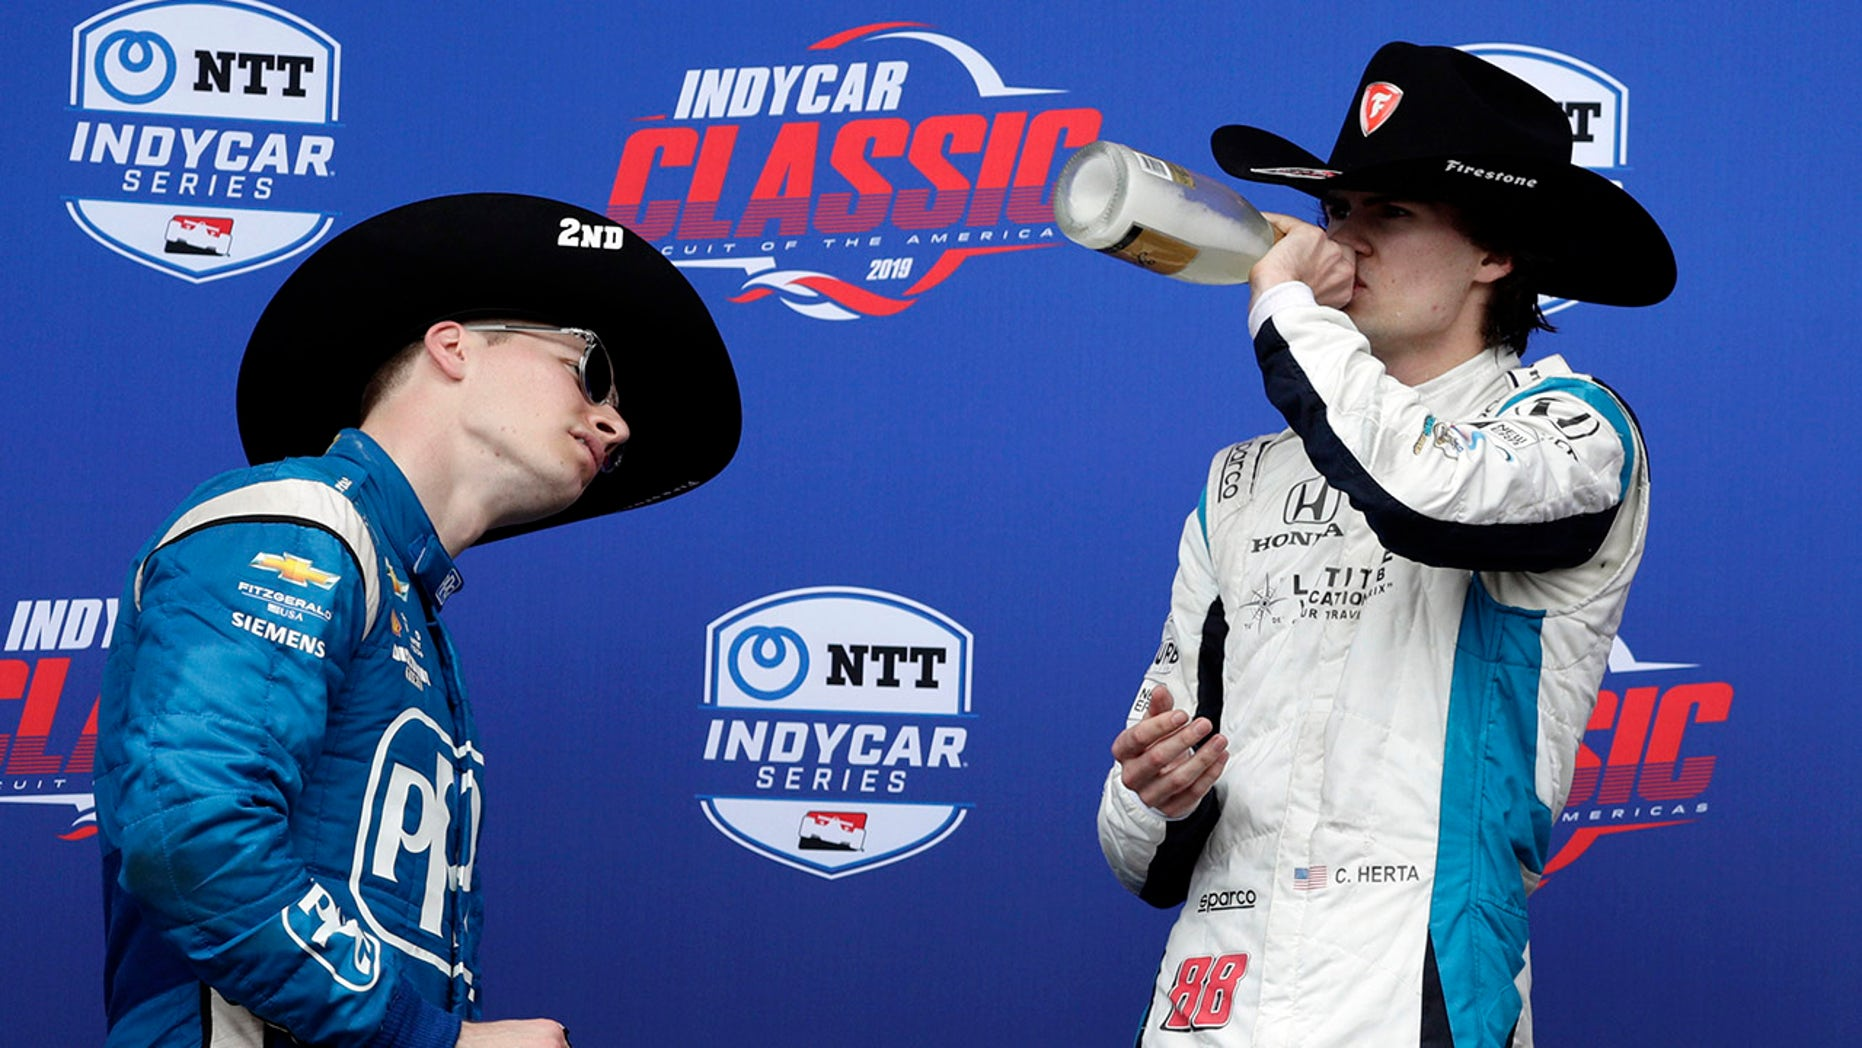 Runner-up Josef Newgarden checked the label on Herta's bottle when he saw him take a drink.